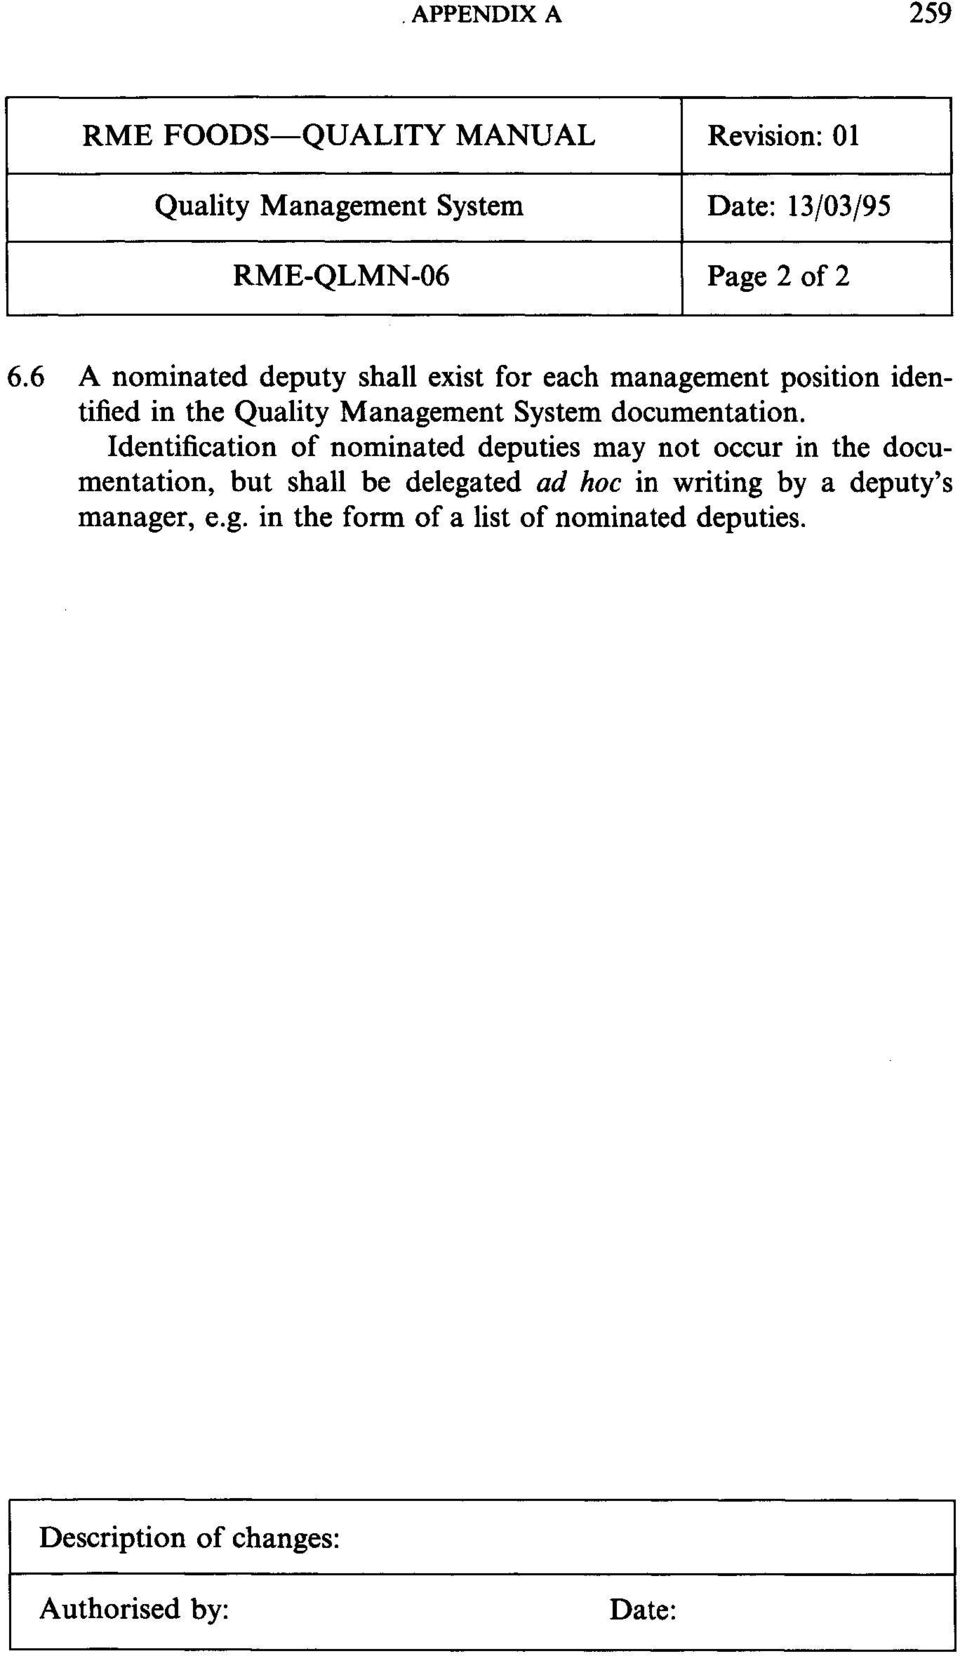 6 A nominated deputy shall exist for each management position identified in the Quality Management System